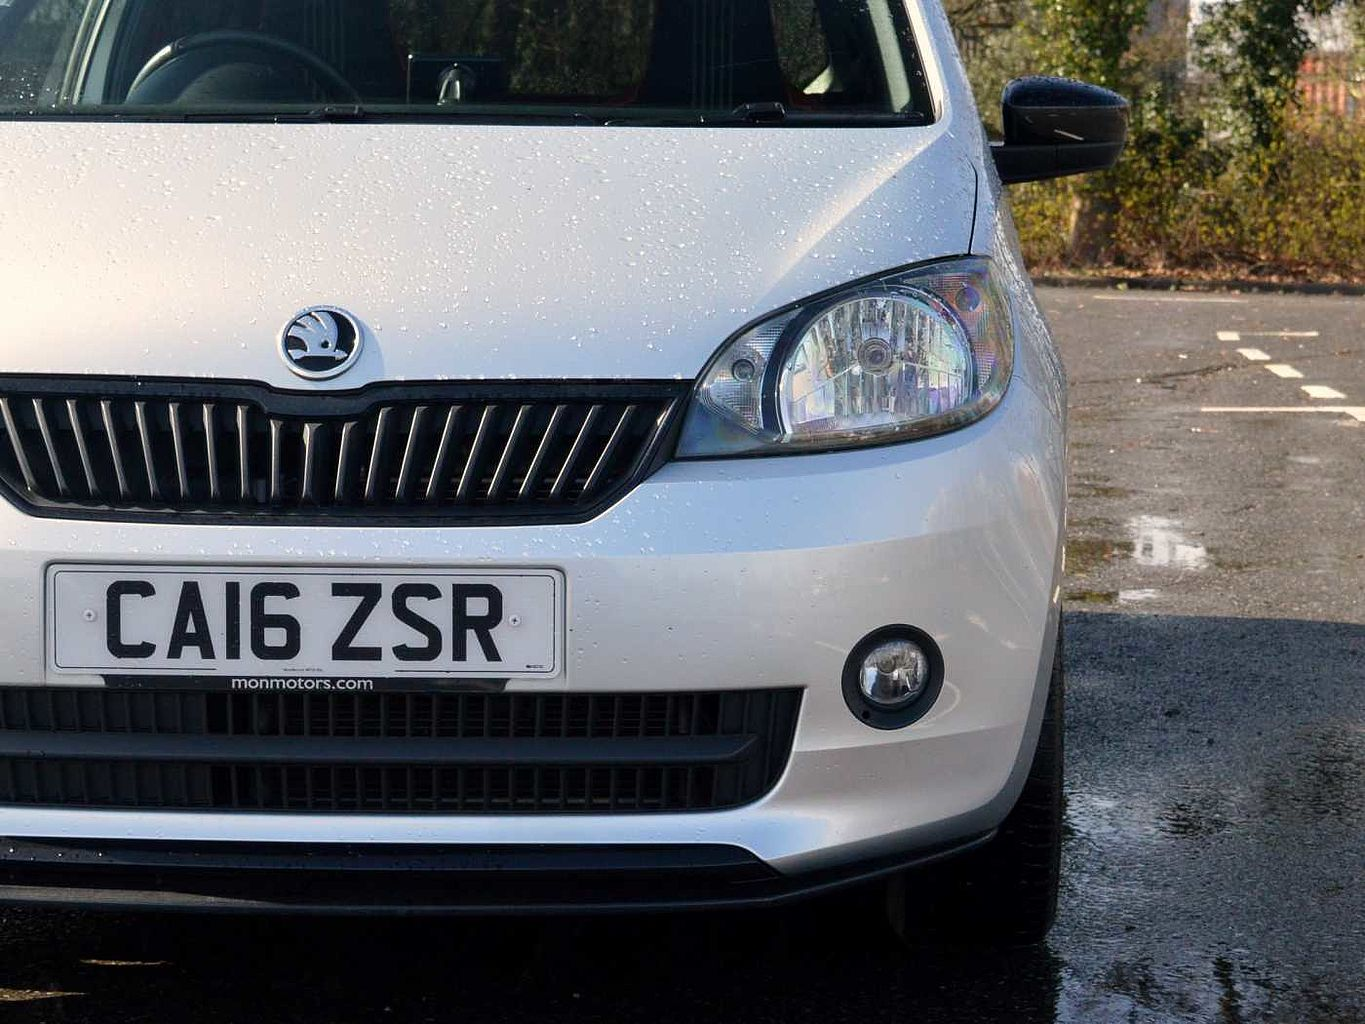 SKODA Citigo 5 door Monte Carlo 1.0 MPI 60 PS 5G Man